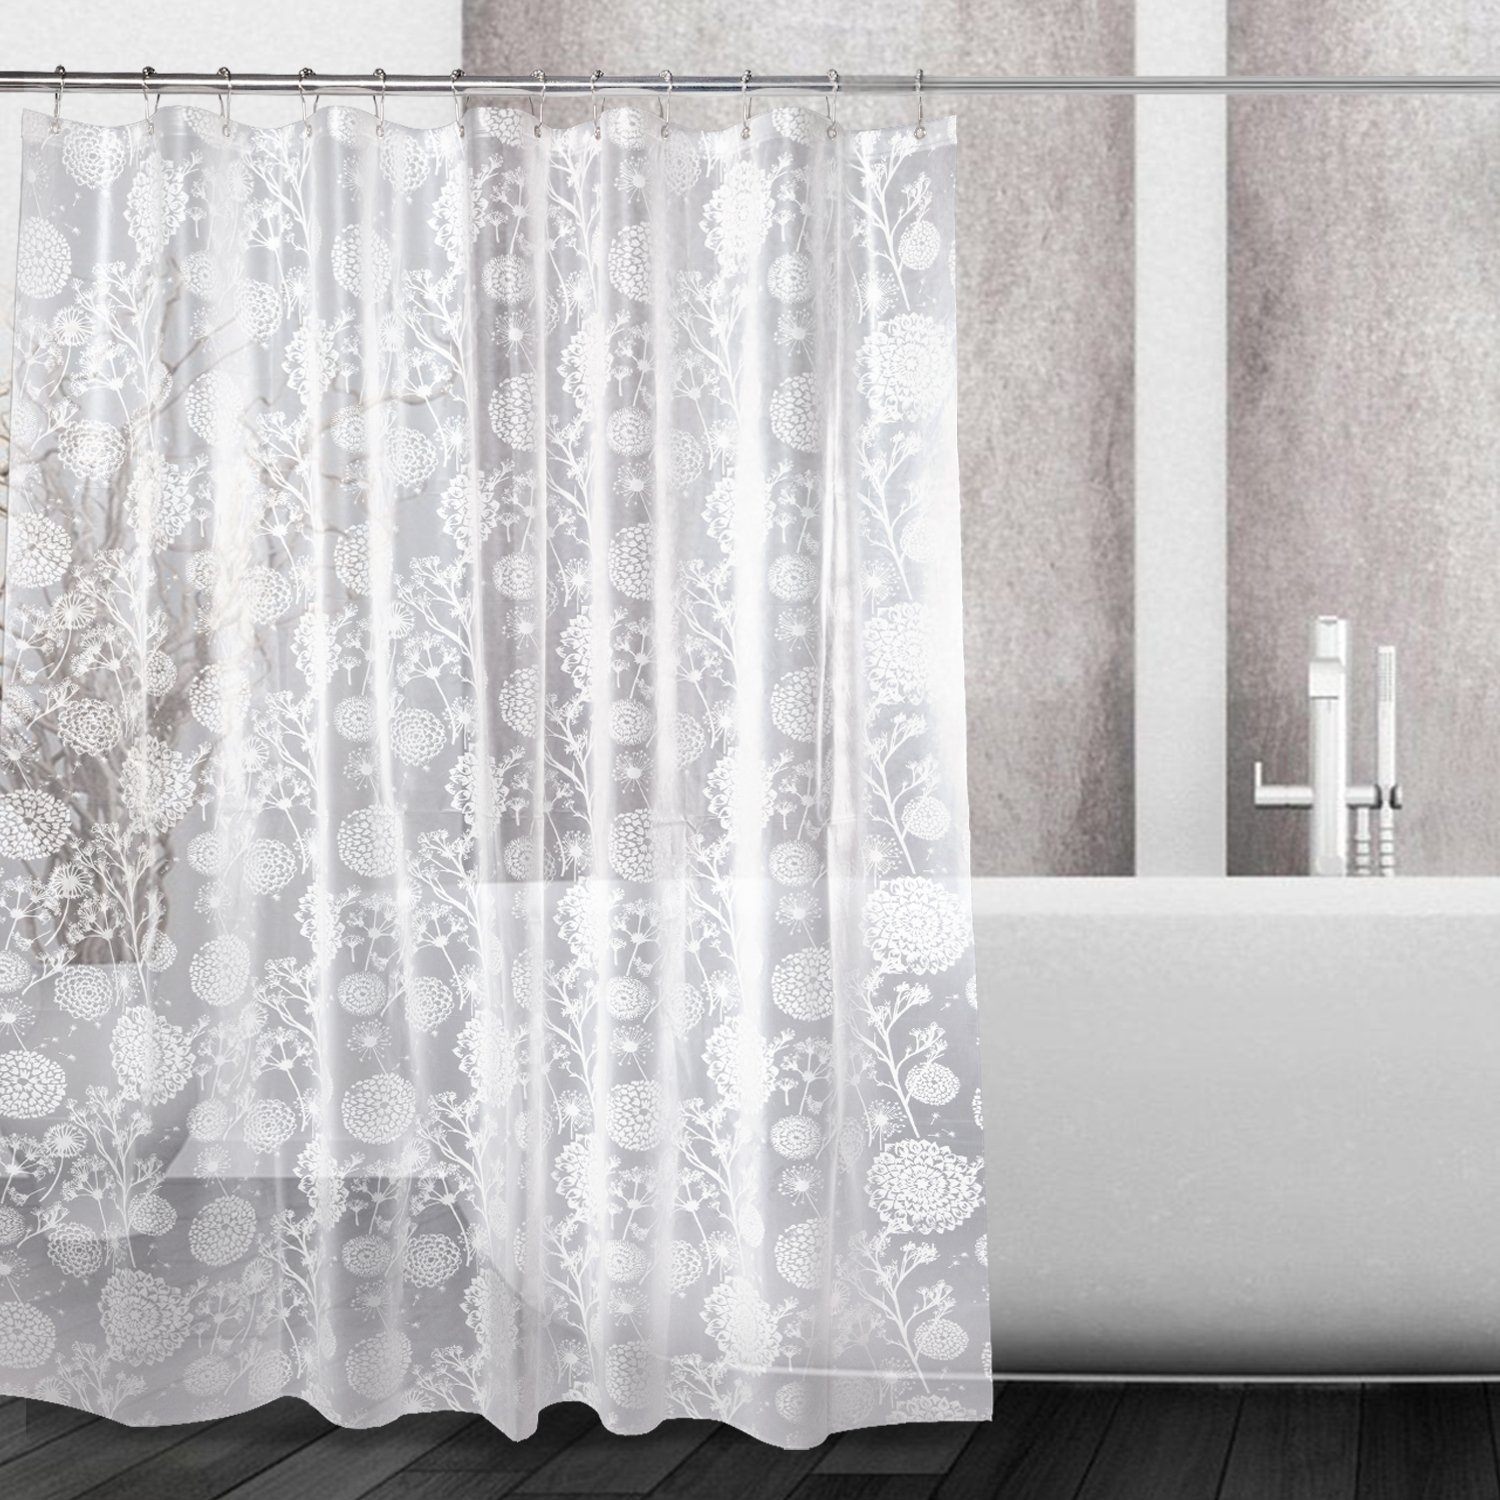 products ch brown chelsea curtains large resistant curtain fsc fabric ivory fashions inc water shower carnation ensembles home